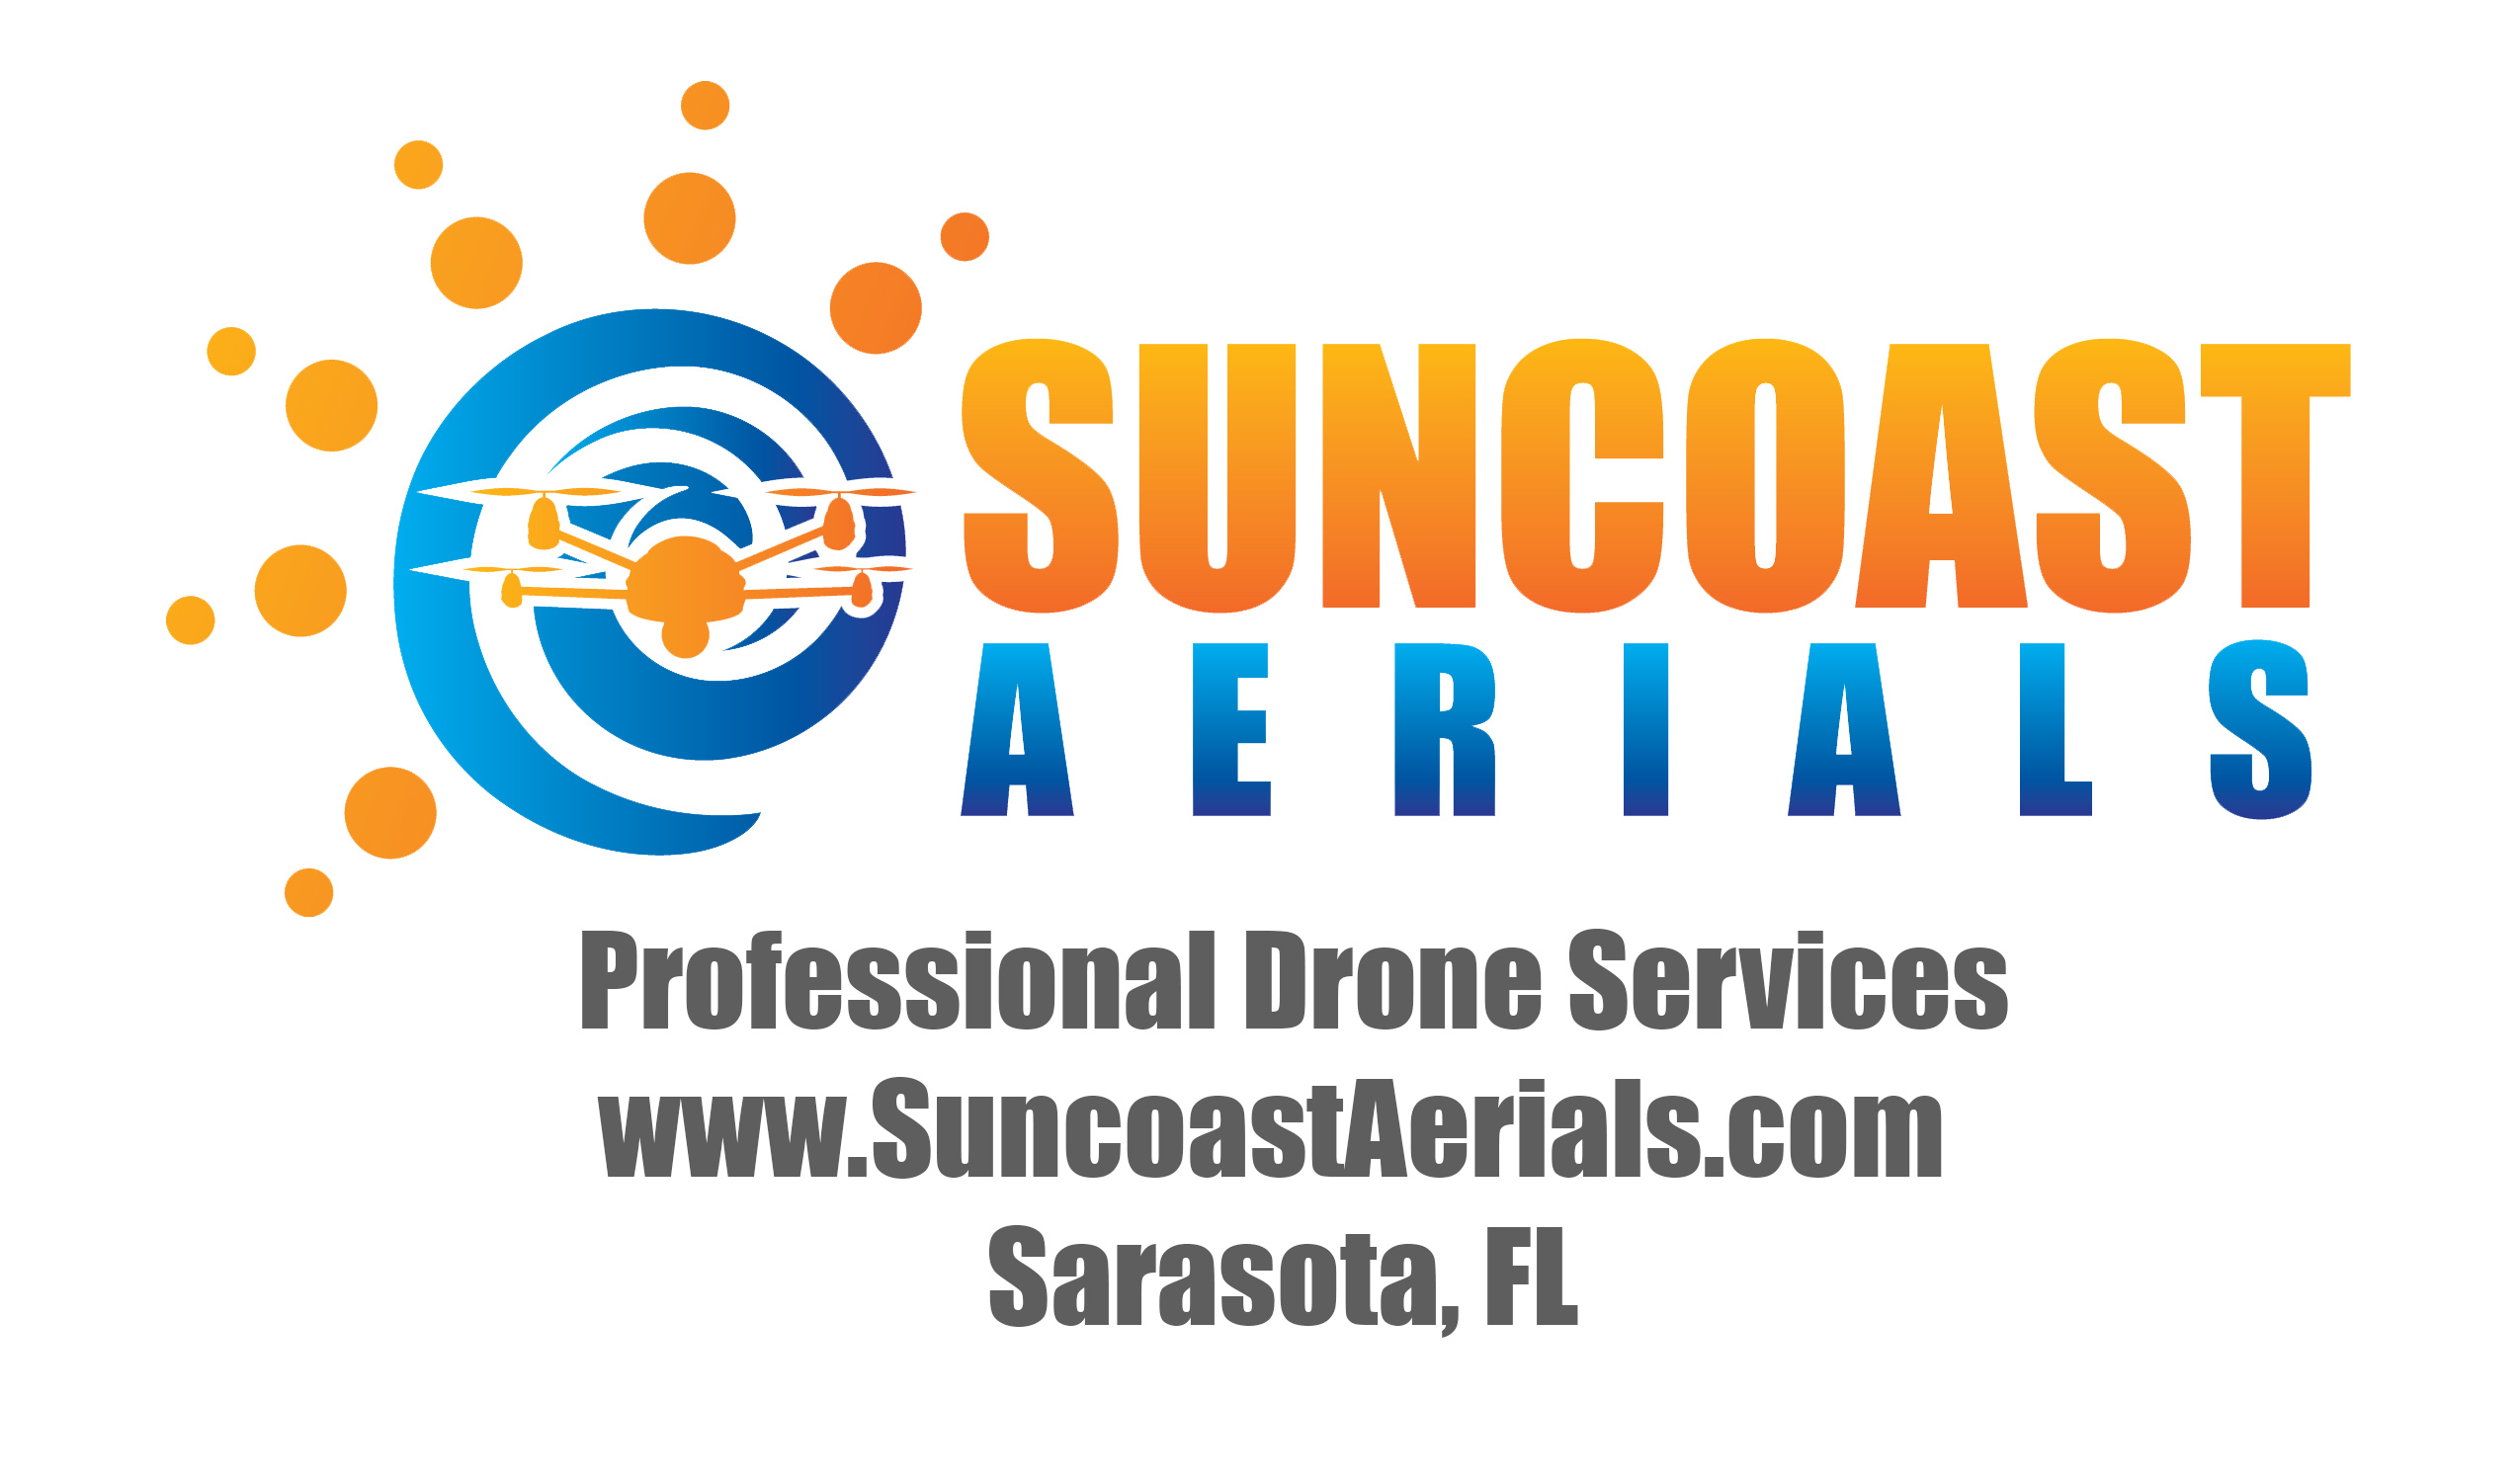 suncoast aerials professional drone services in sarasota